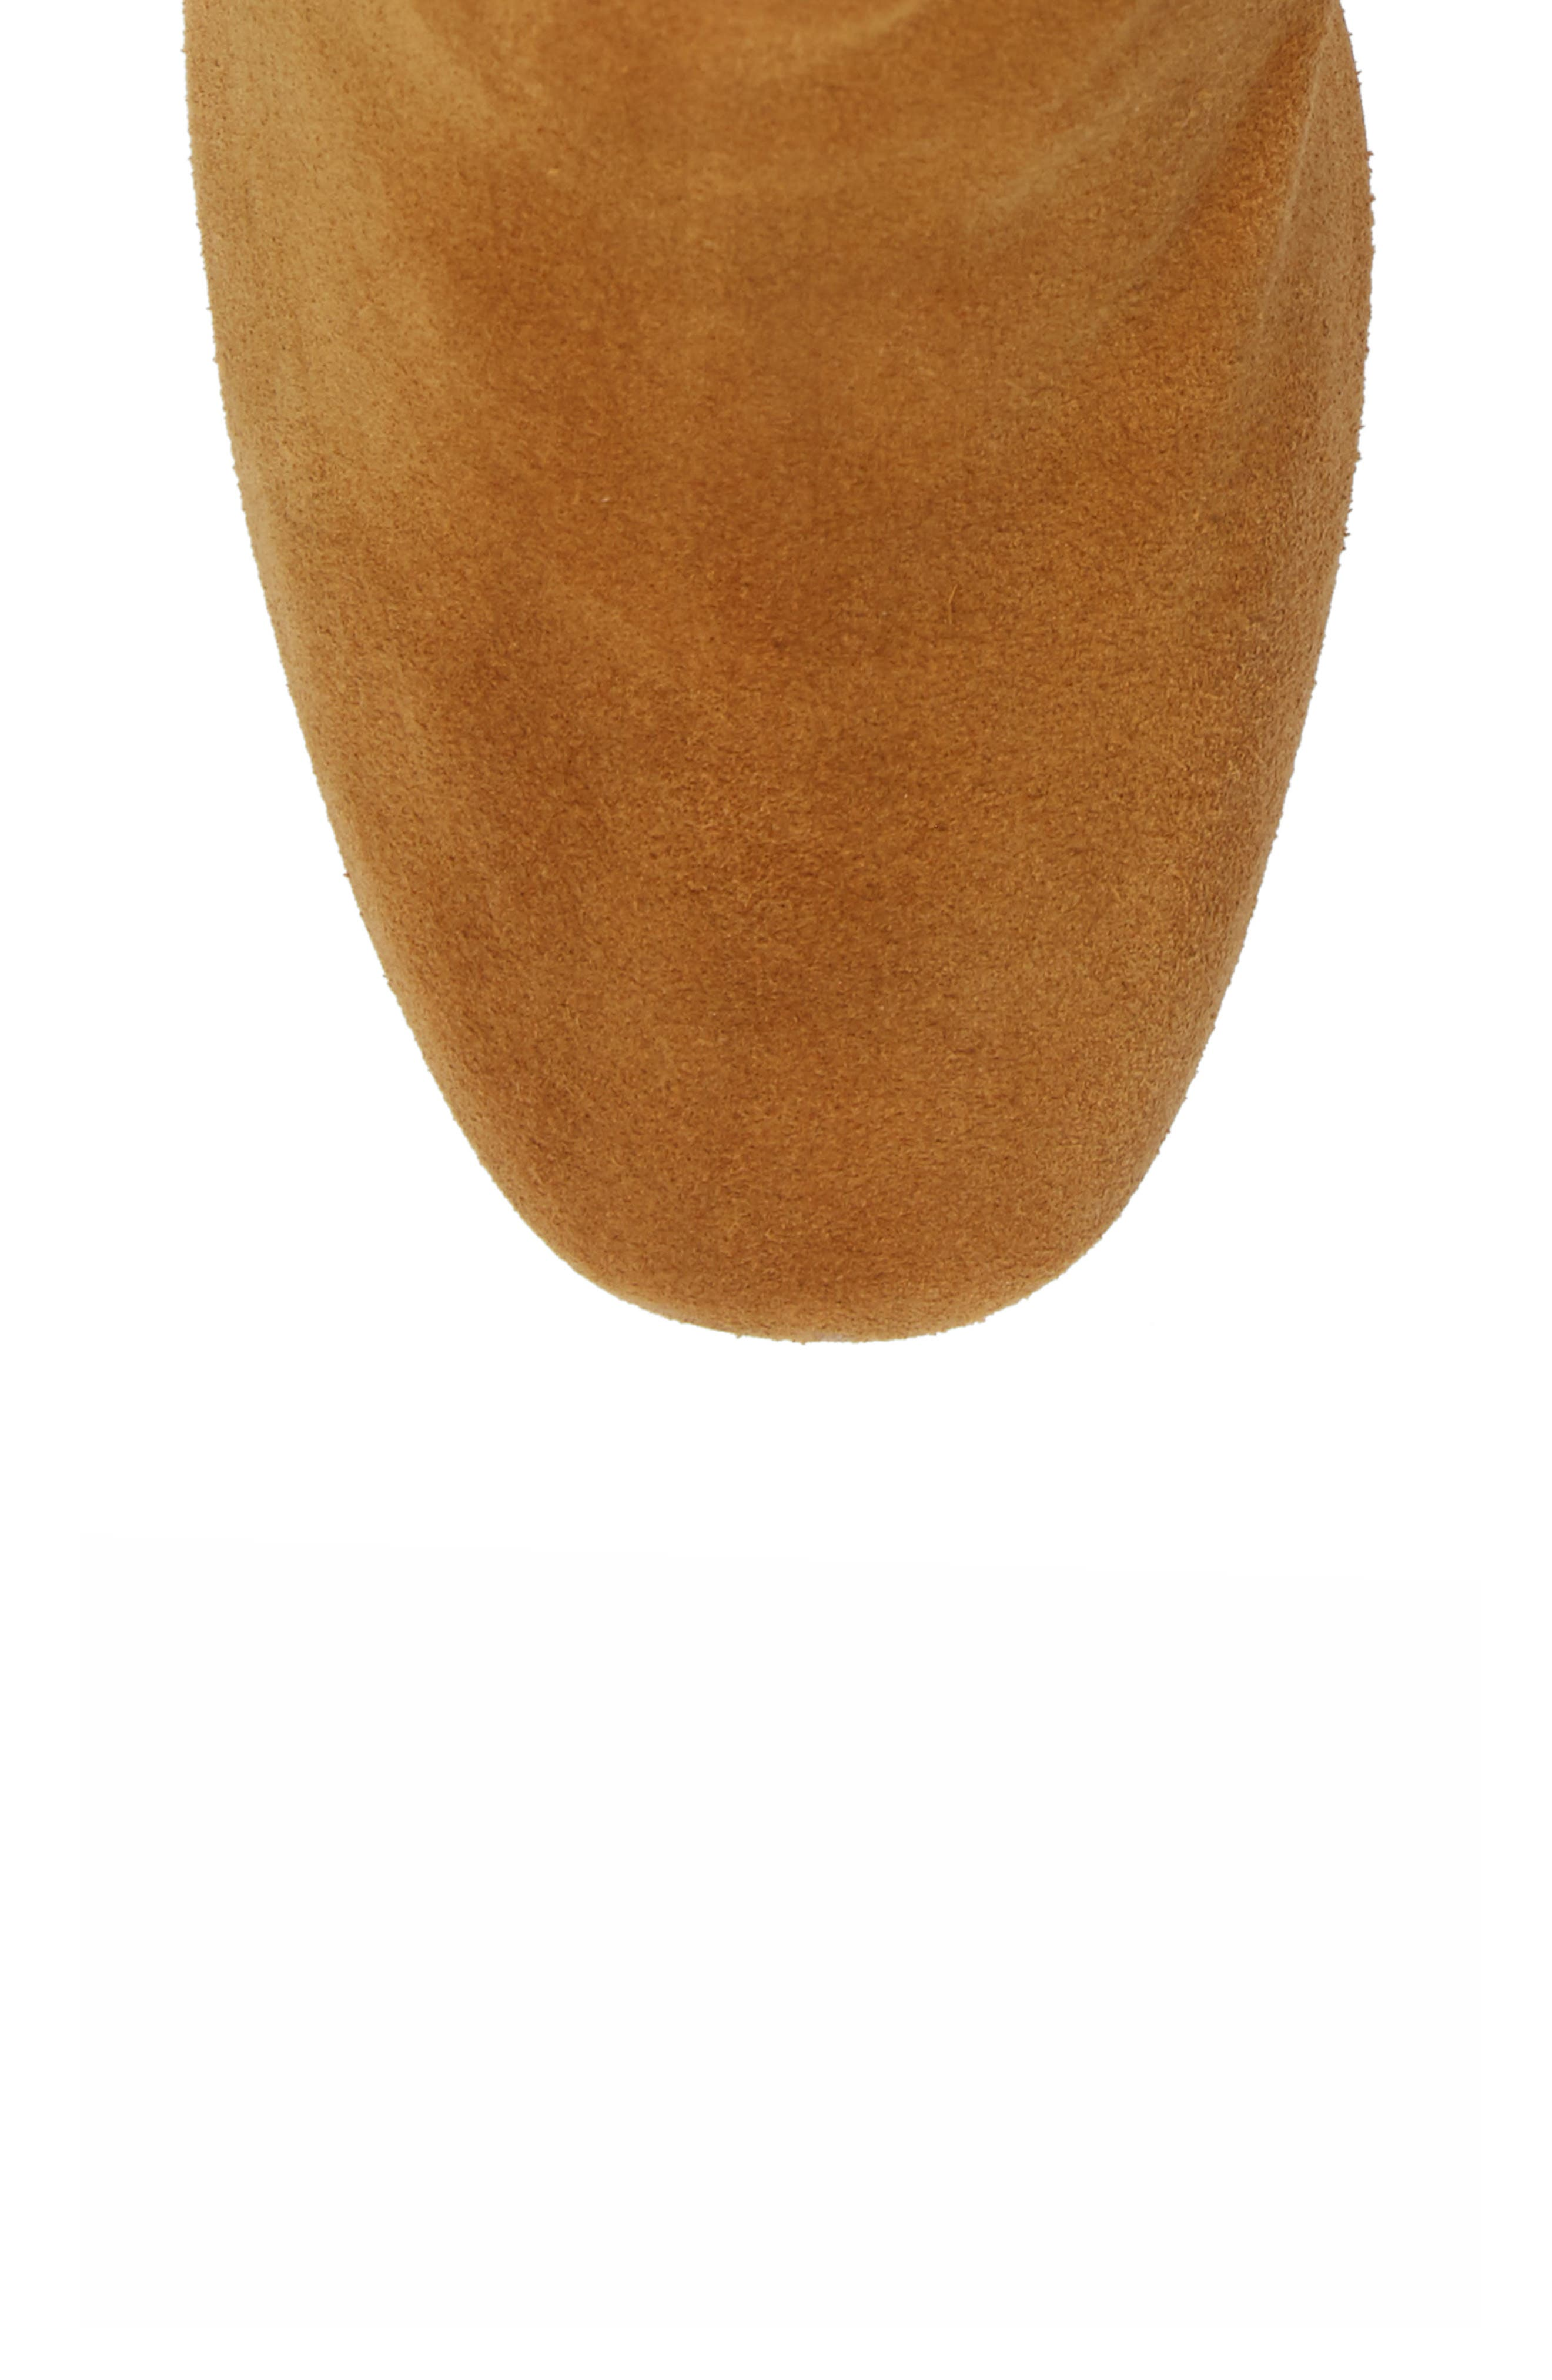 Daisee Billie Bootie,                             Alternate thumbnail 5, color,                             Camel Suede